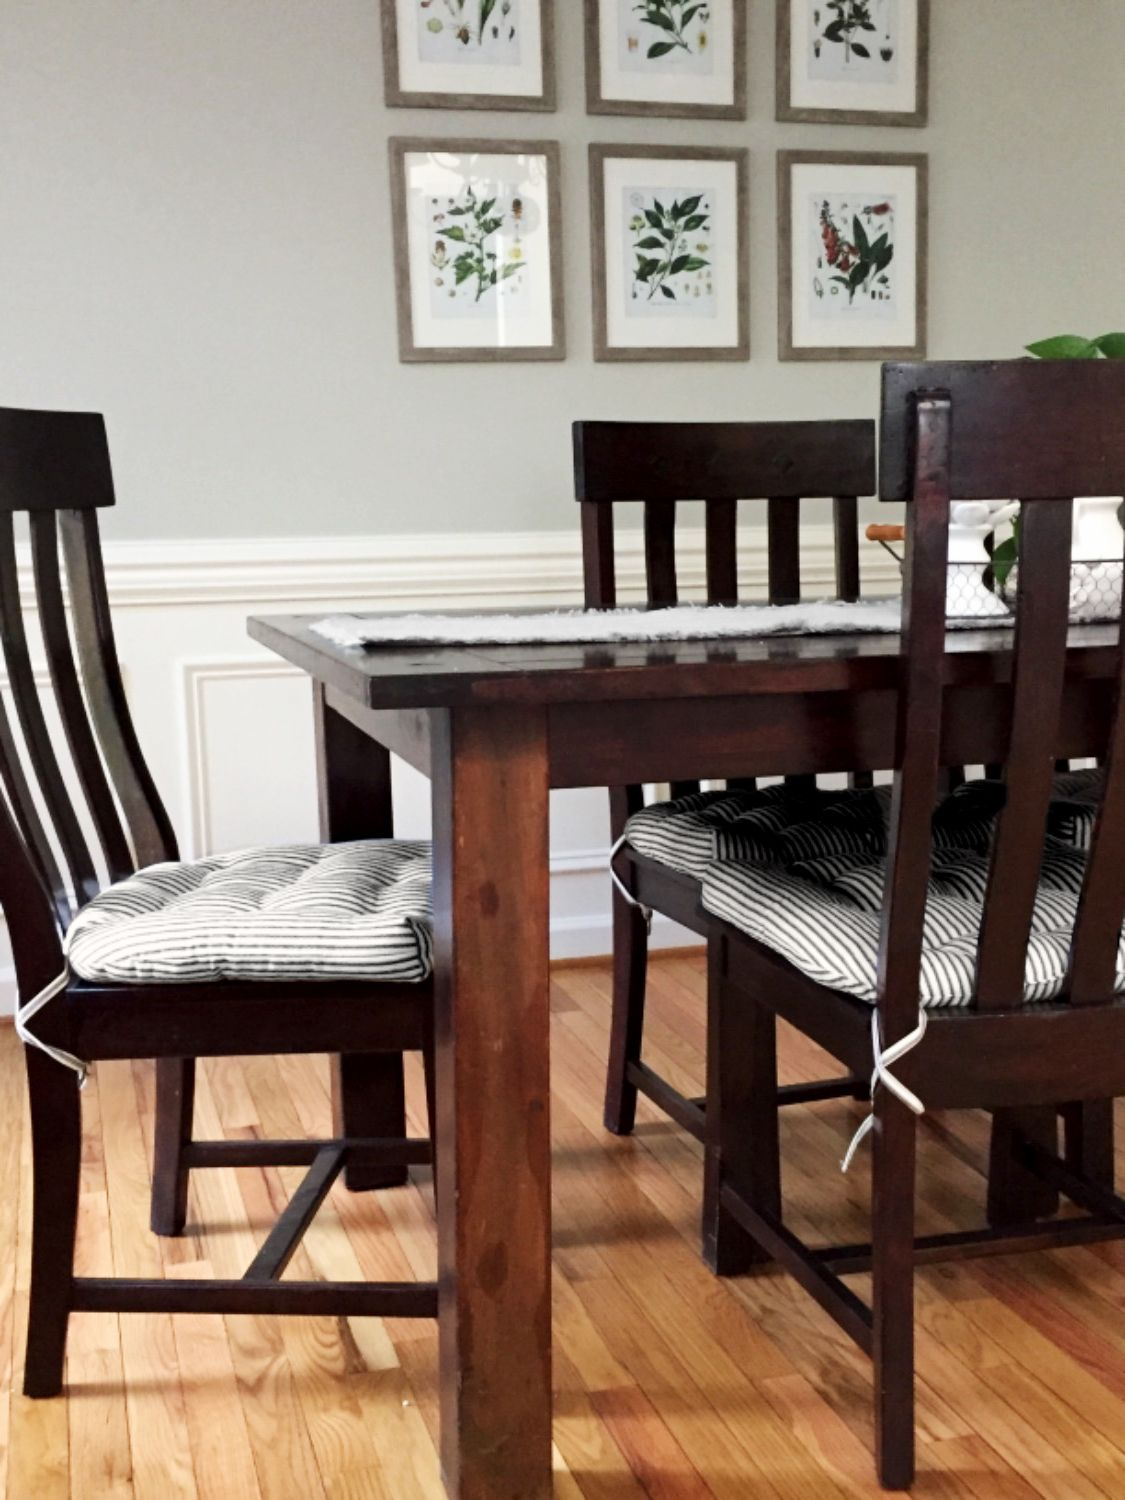 The Black And White Ticking Chair Pads Fit Our Chairs Perfectly Are Comfortable Look Beautiful In Dining Room They Exactly What I Was